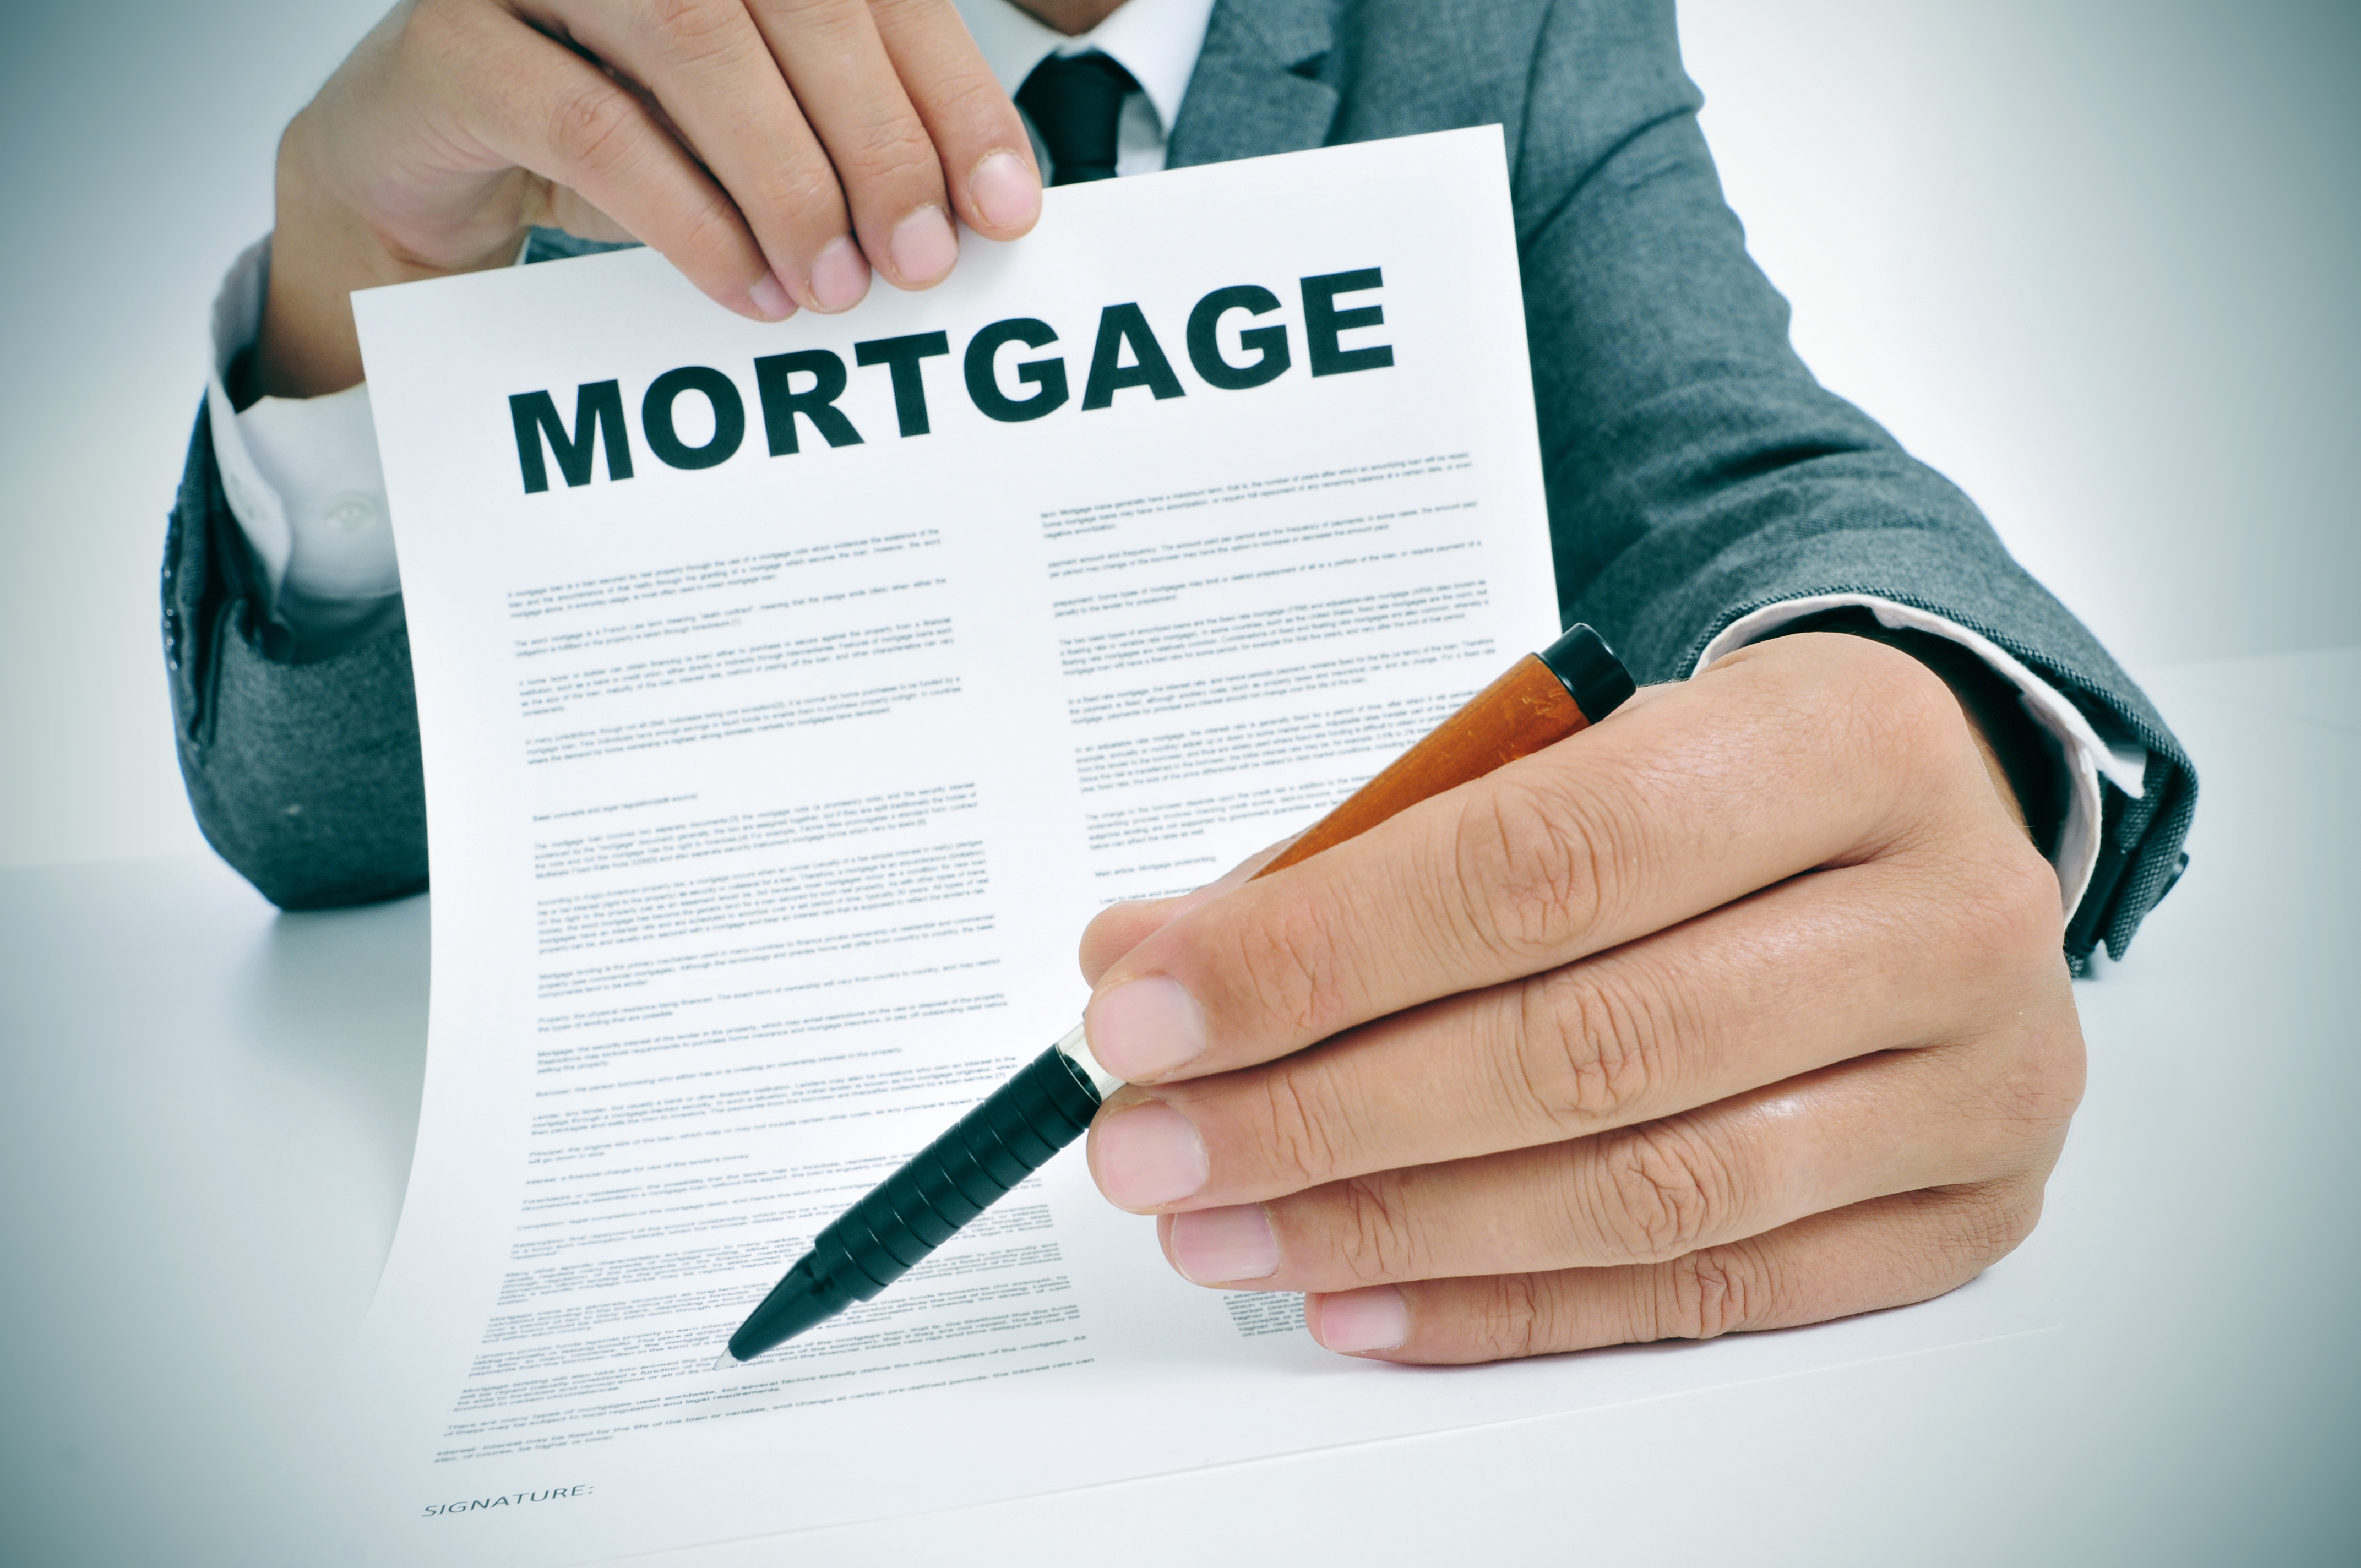 how to get a mortgage loan with no credit